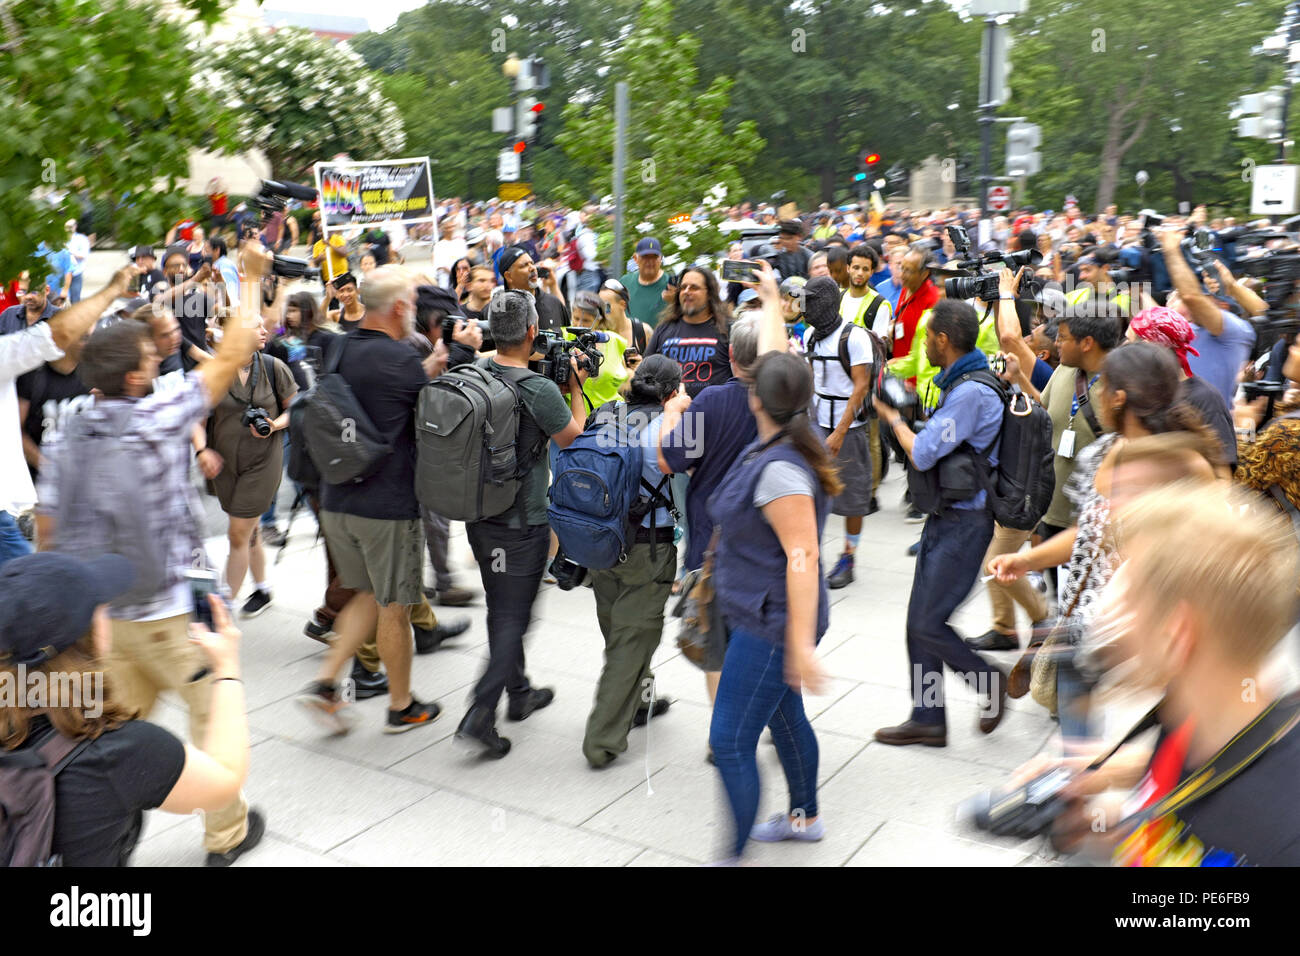 Washington D.C., USA. 12th August, 2018.  An alt-right supporter leaves the 'Unite the Right 2' rally in Lafayette Park to a crowd of counterprotesters and photographers.  Dressed in a Trump 2020 t-shirt, the man is attempting to leave the rally while people are shouting at him.  The photo was taken before he sought police protection nearby.  Credit: Mark Kanning/Alamy Live News. Stock Photo